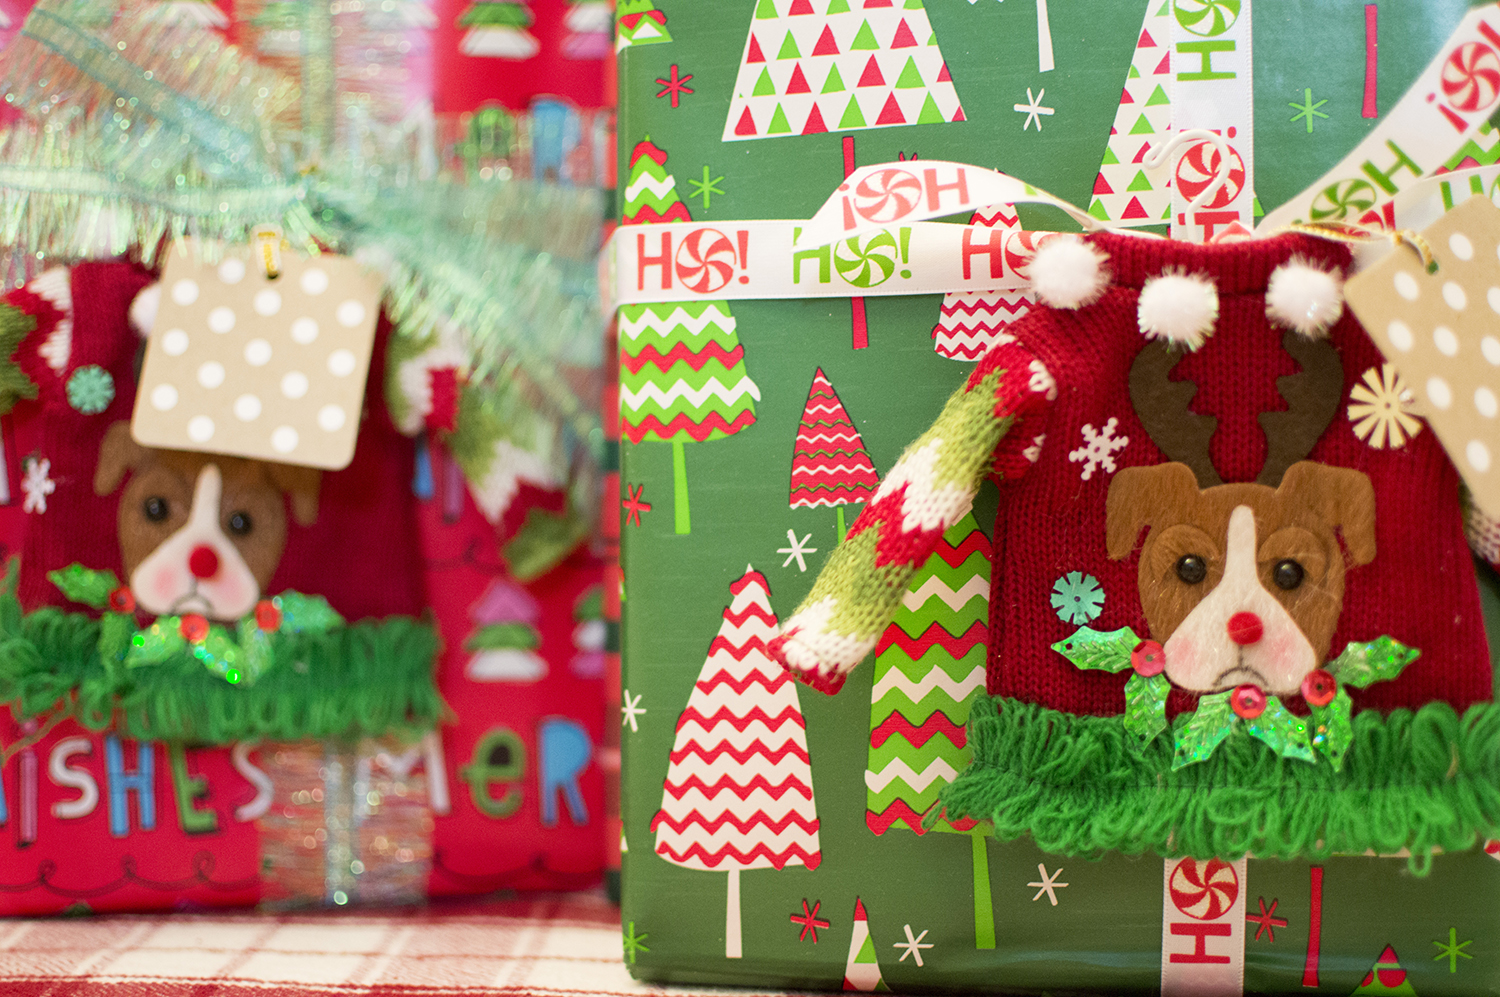 cf54b1d5eb3f5f Give the gift of Christmas decorations with a fun nutcracker or themed  ornament. I like to add mine